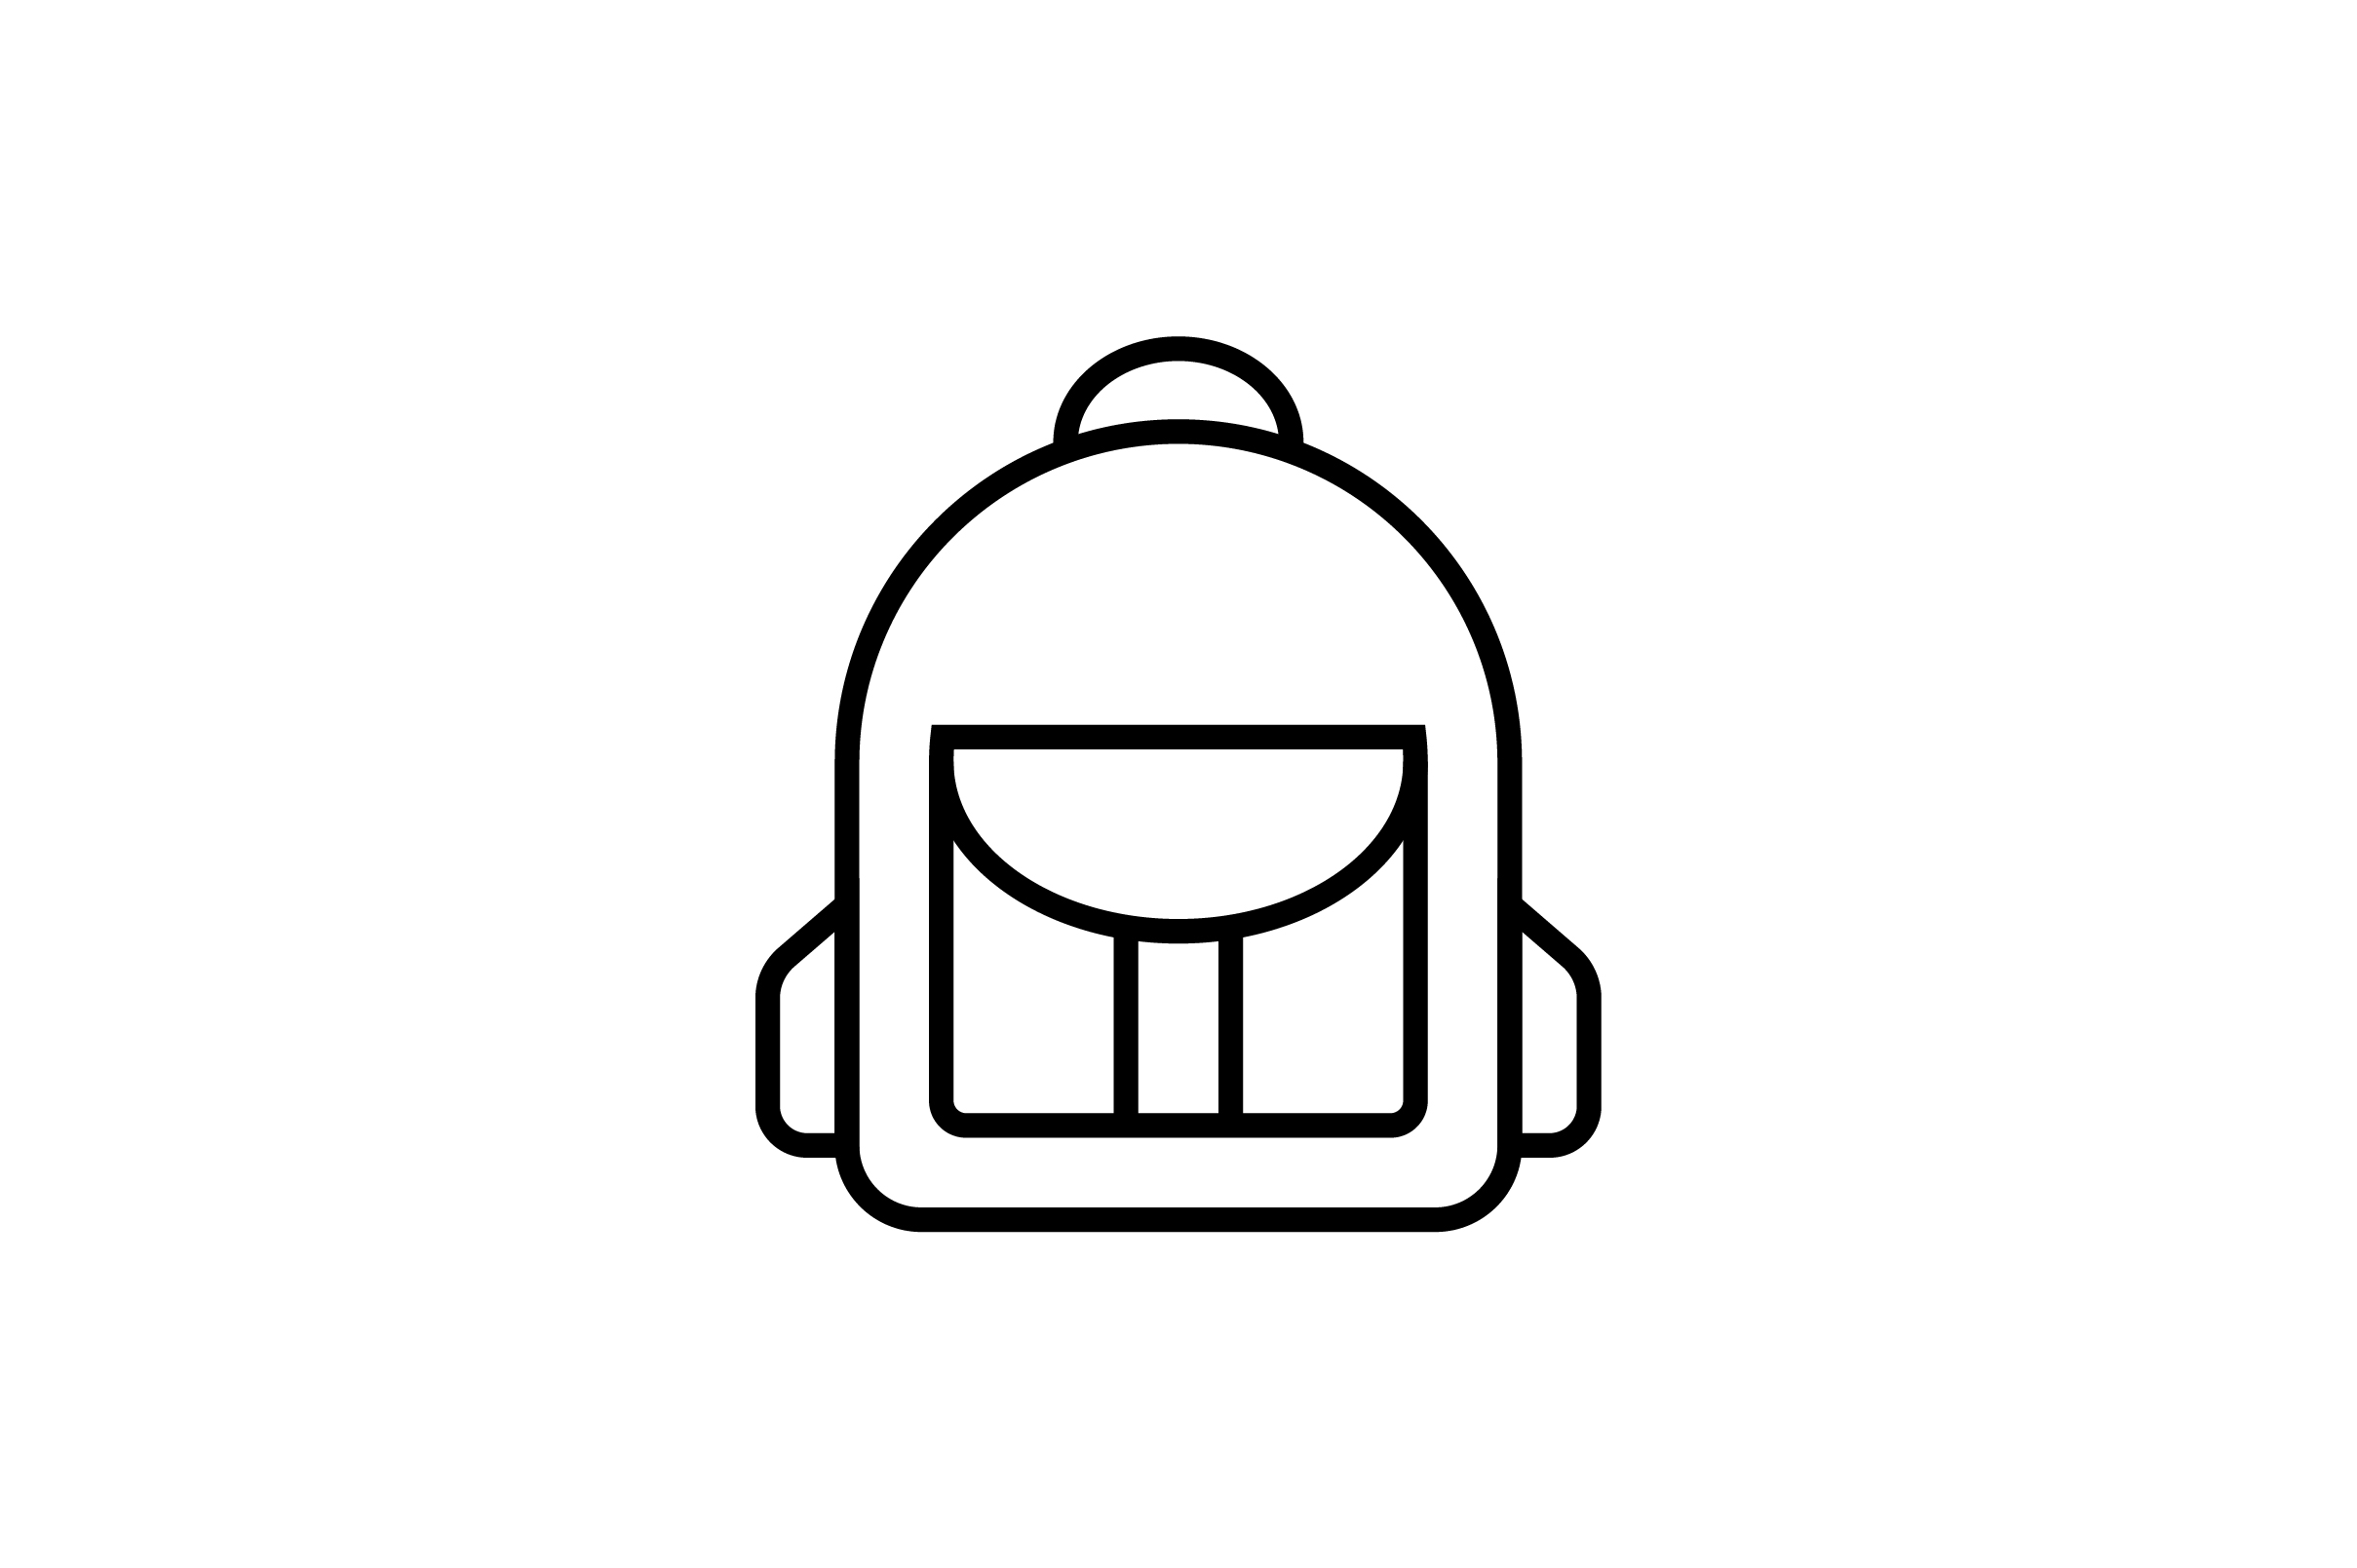 Download Free Office Bag Line Art Vector Icon Graphic By Riduwan Molla for Cricut Explore, Silhouette and other cutting machines.